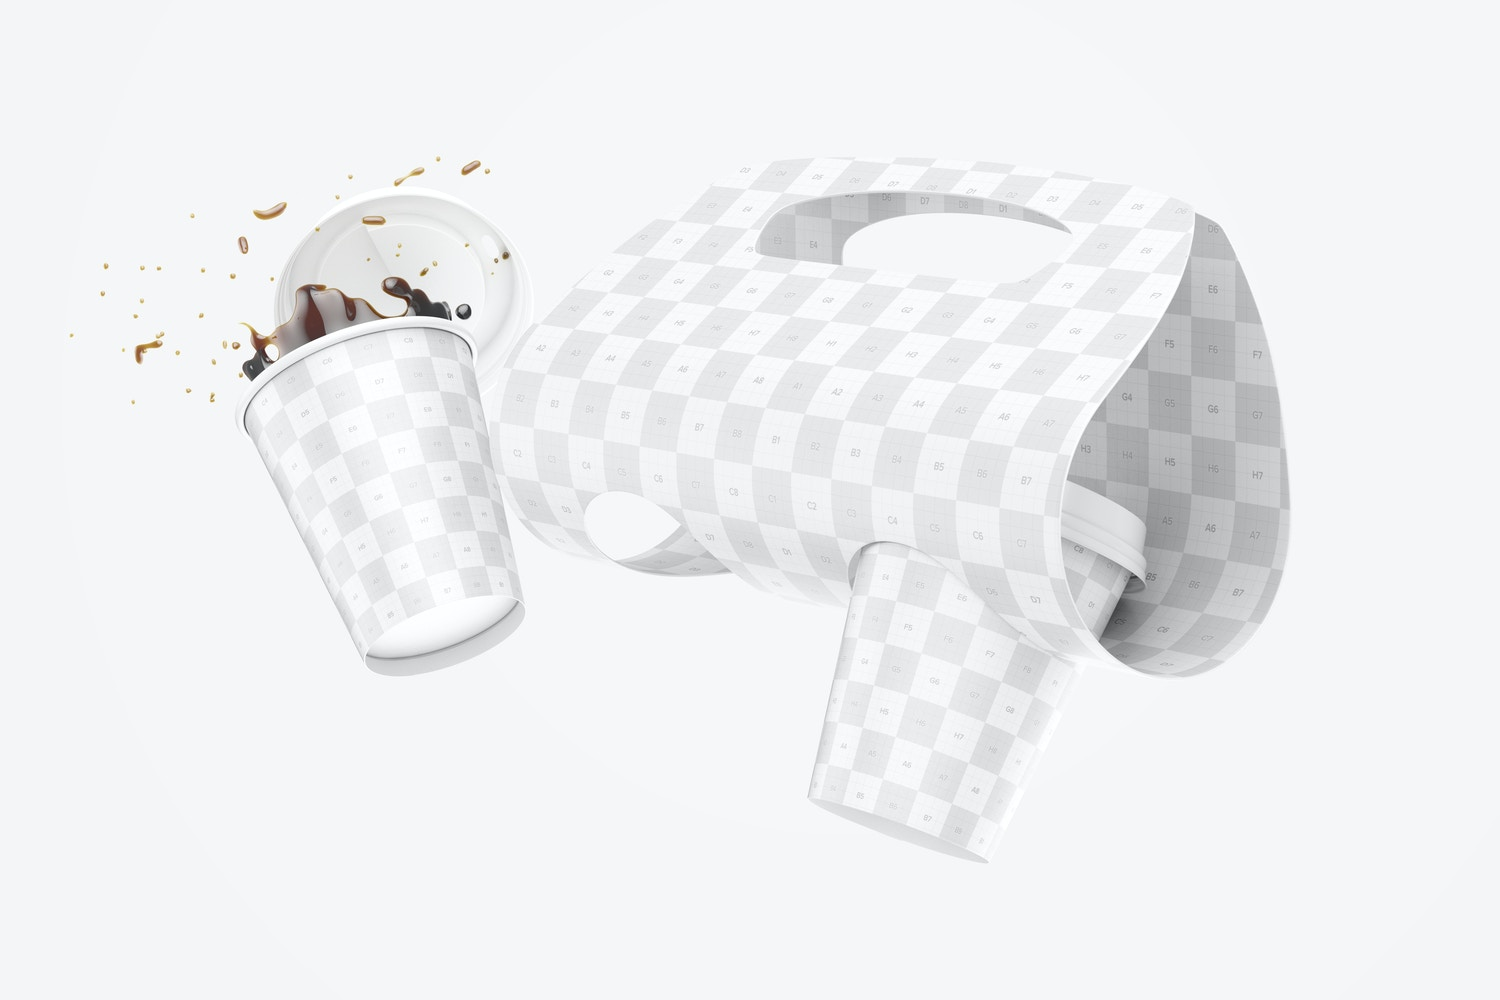 Coffee Cups with Holder Mockup, Floating